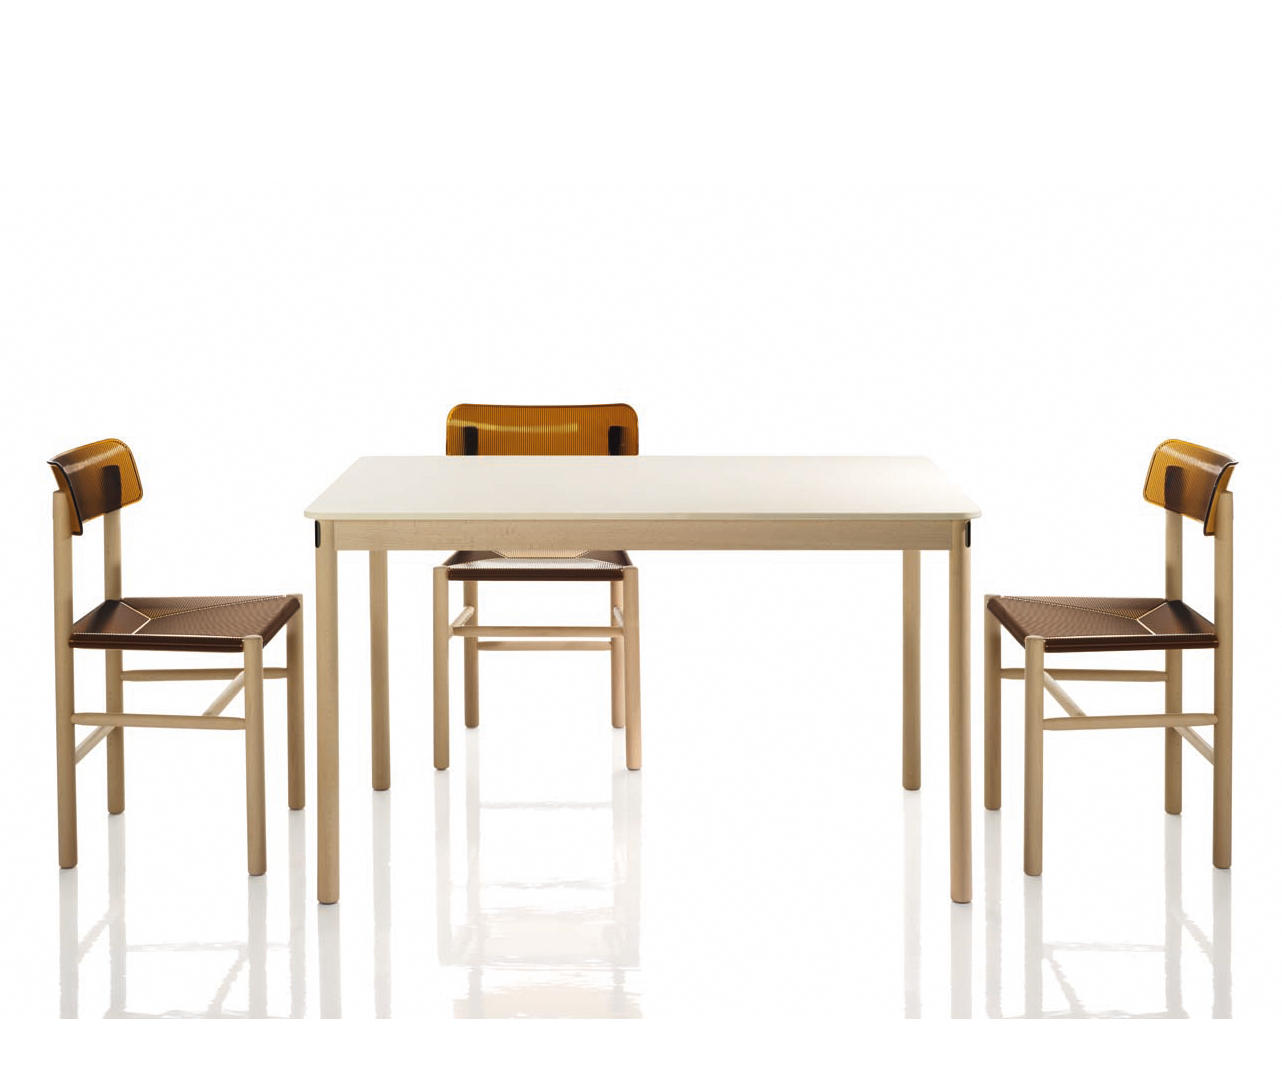 TRATTORIA TABLE - Canteen tables from Magis | Architonic